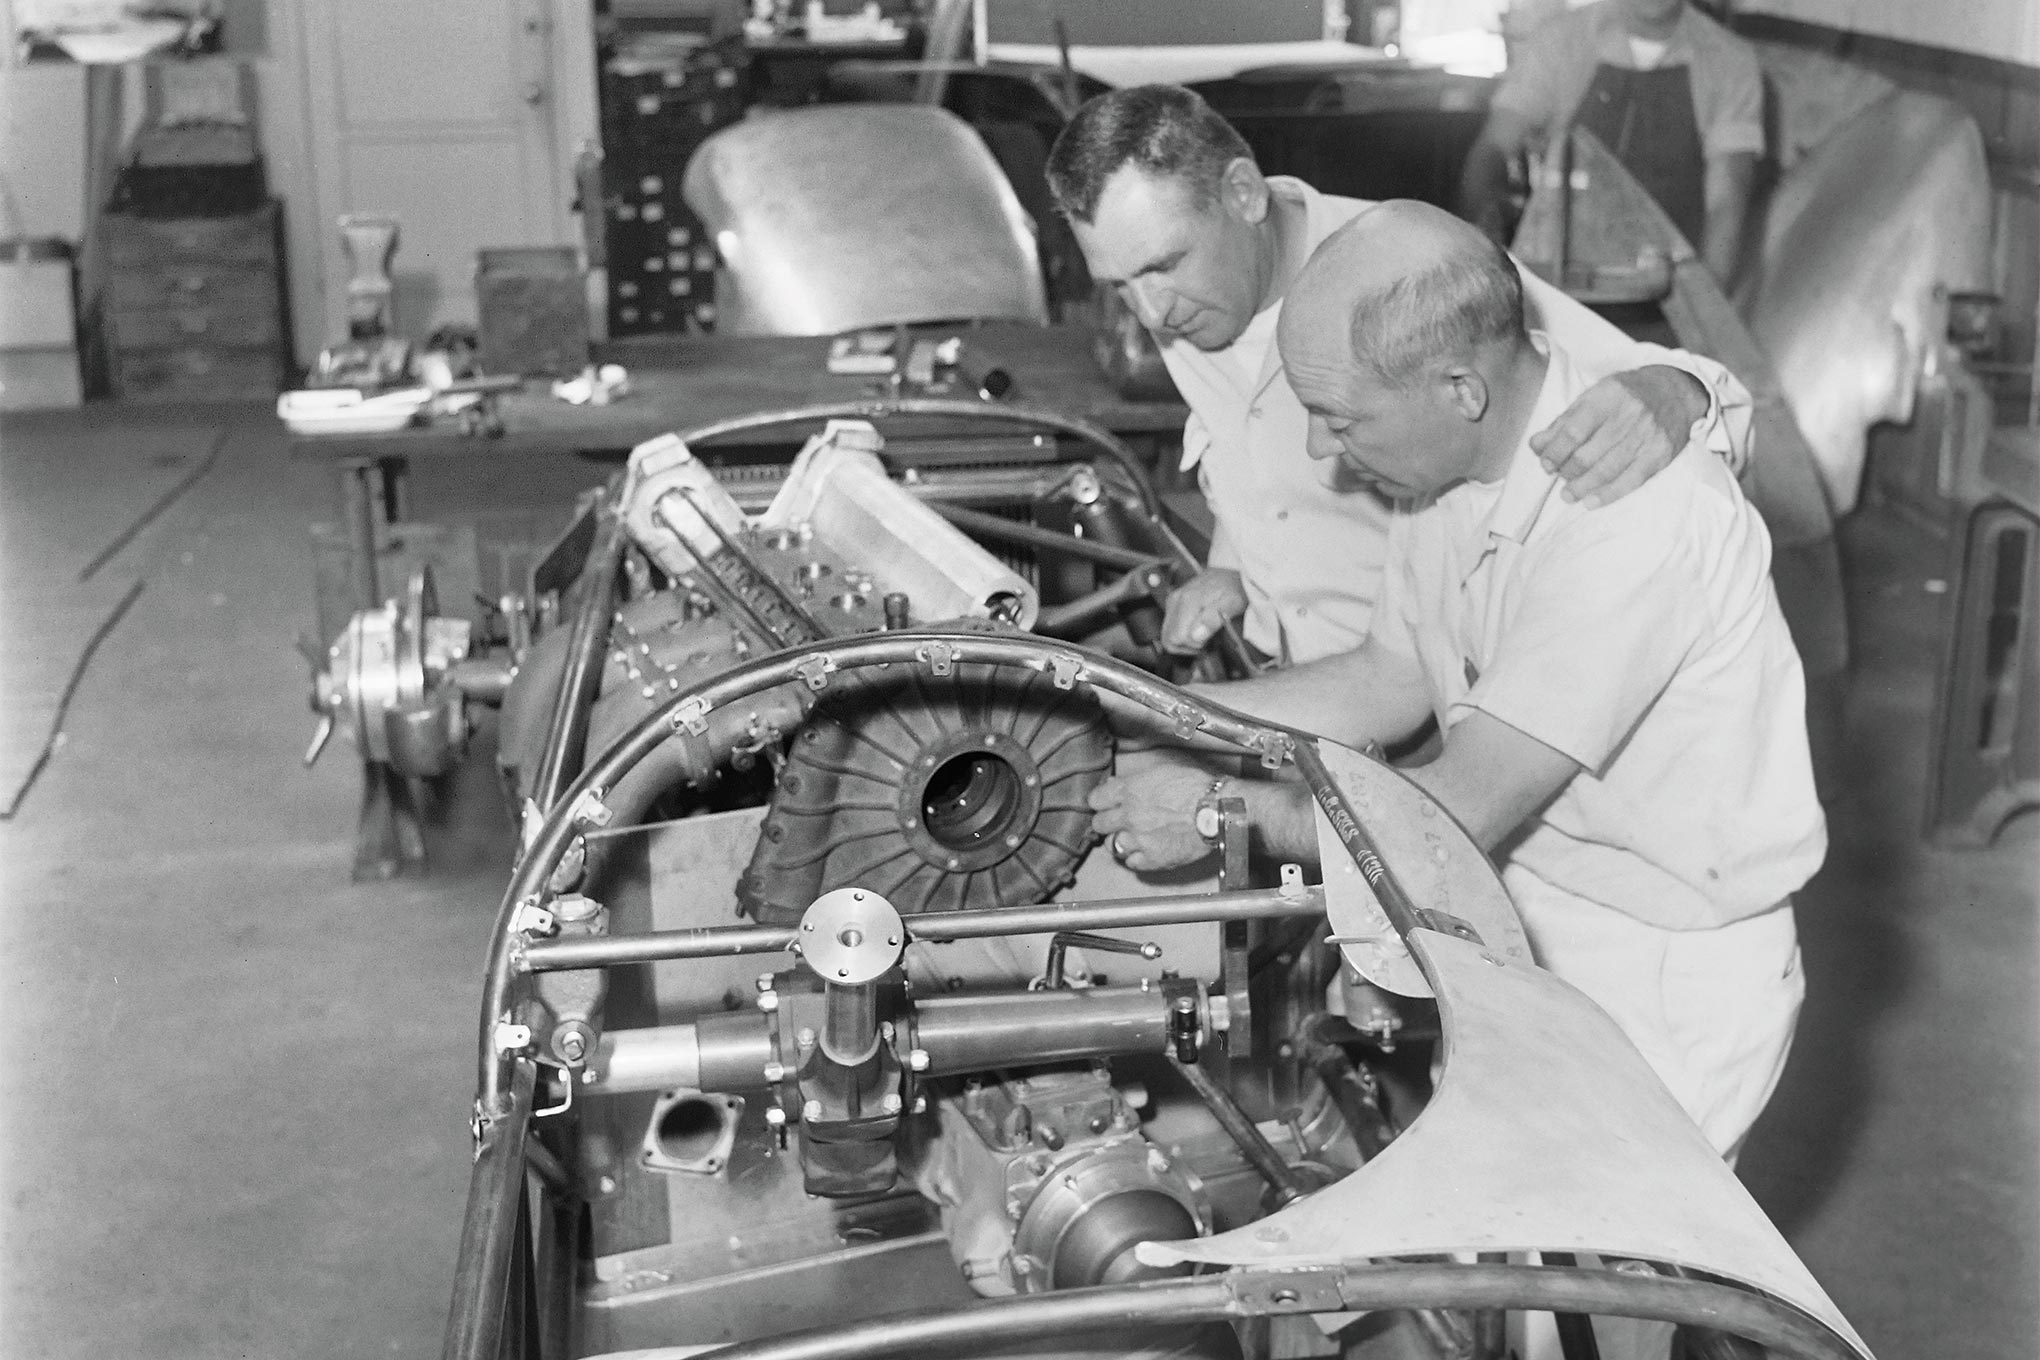 The Indy 500's only supercharged Offy was angled into this skinny package by chassis builder Lujie Lesovsky (foreground). The offset powertrain and seating position theoretically increased traction through IMS's turns, but Rodger Ward finished 30th for car-owner Roger Wolcott. (See June and Aug. '57 HRM for Indy 500 preview and coverage, respectively.)